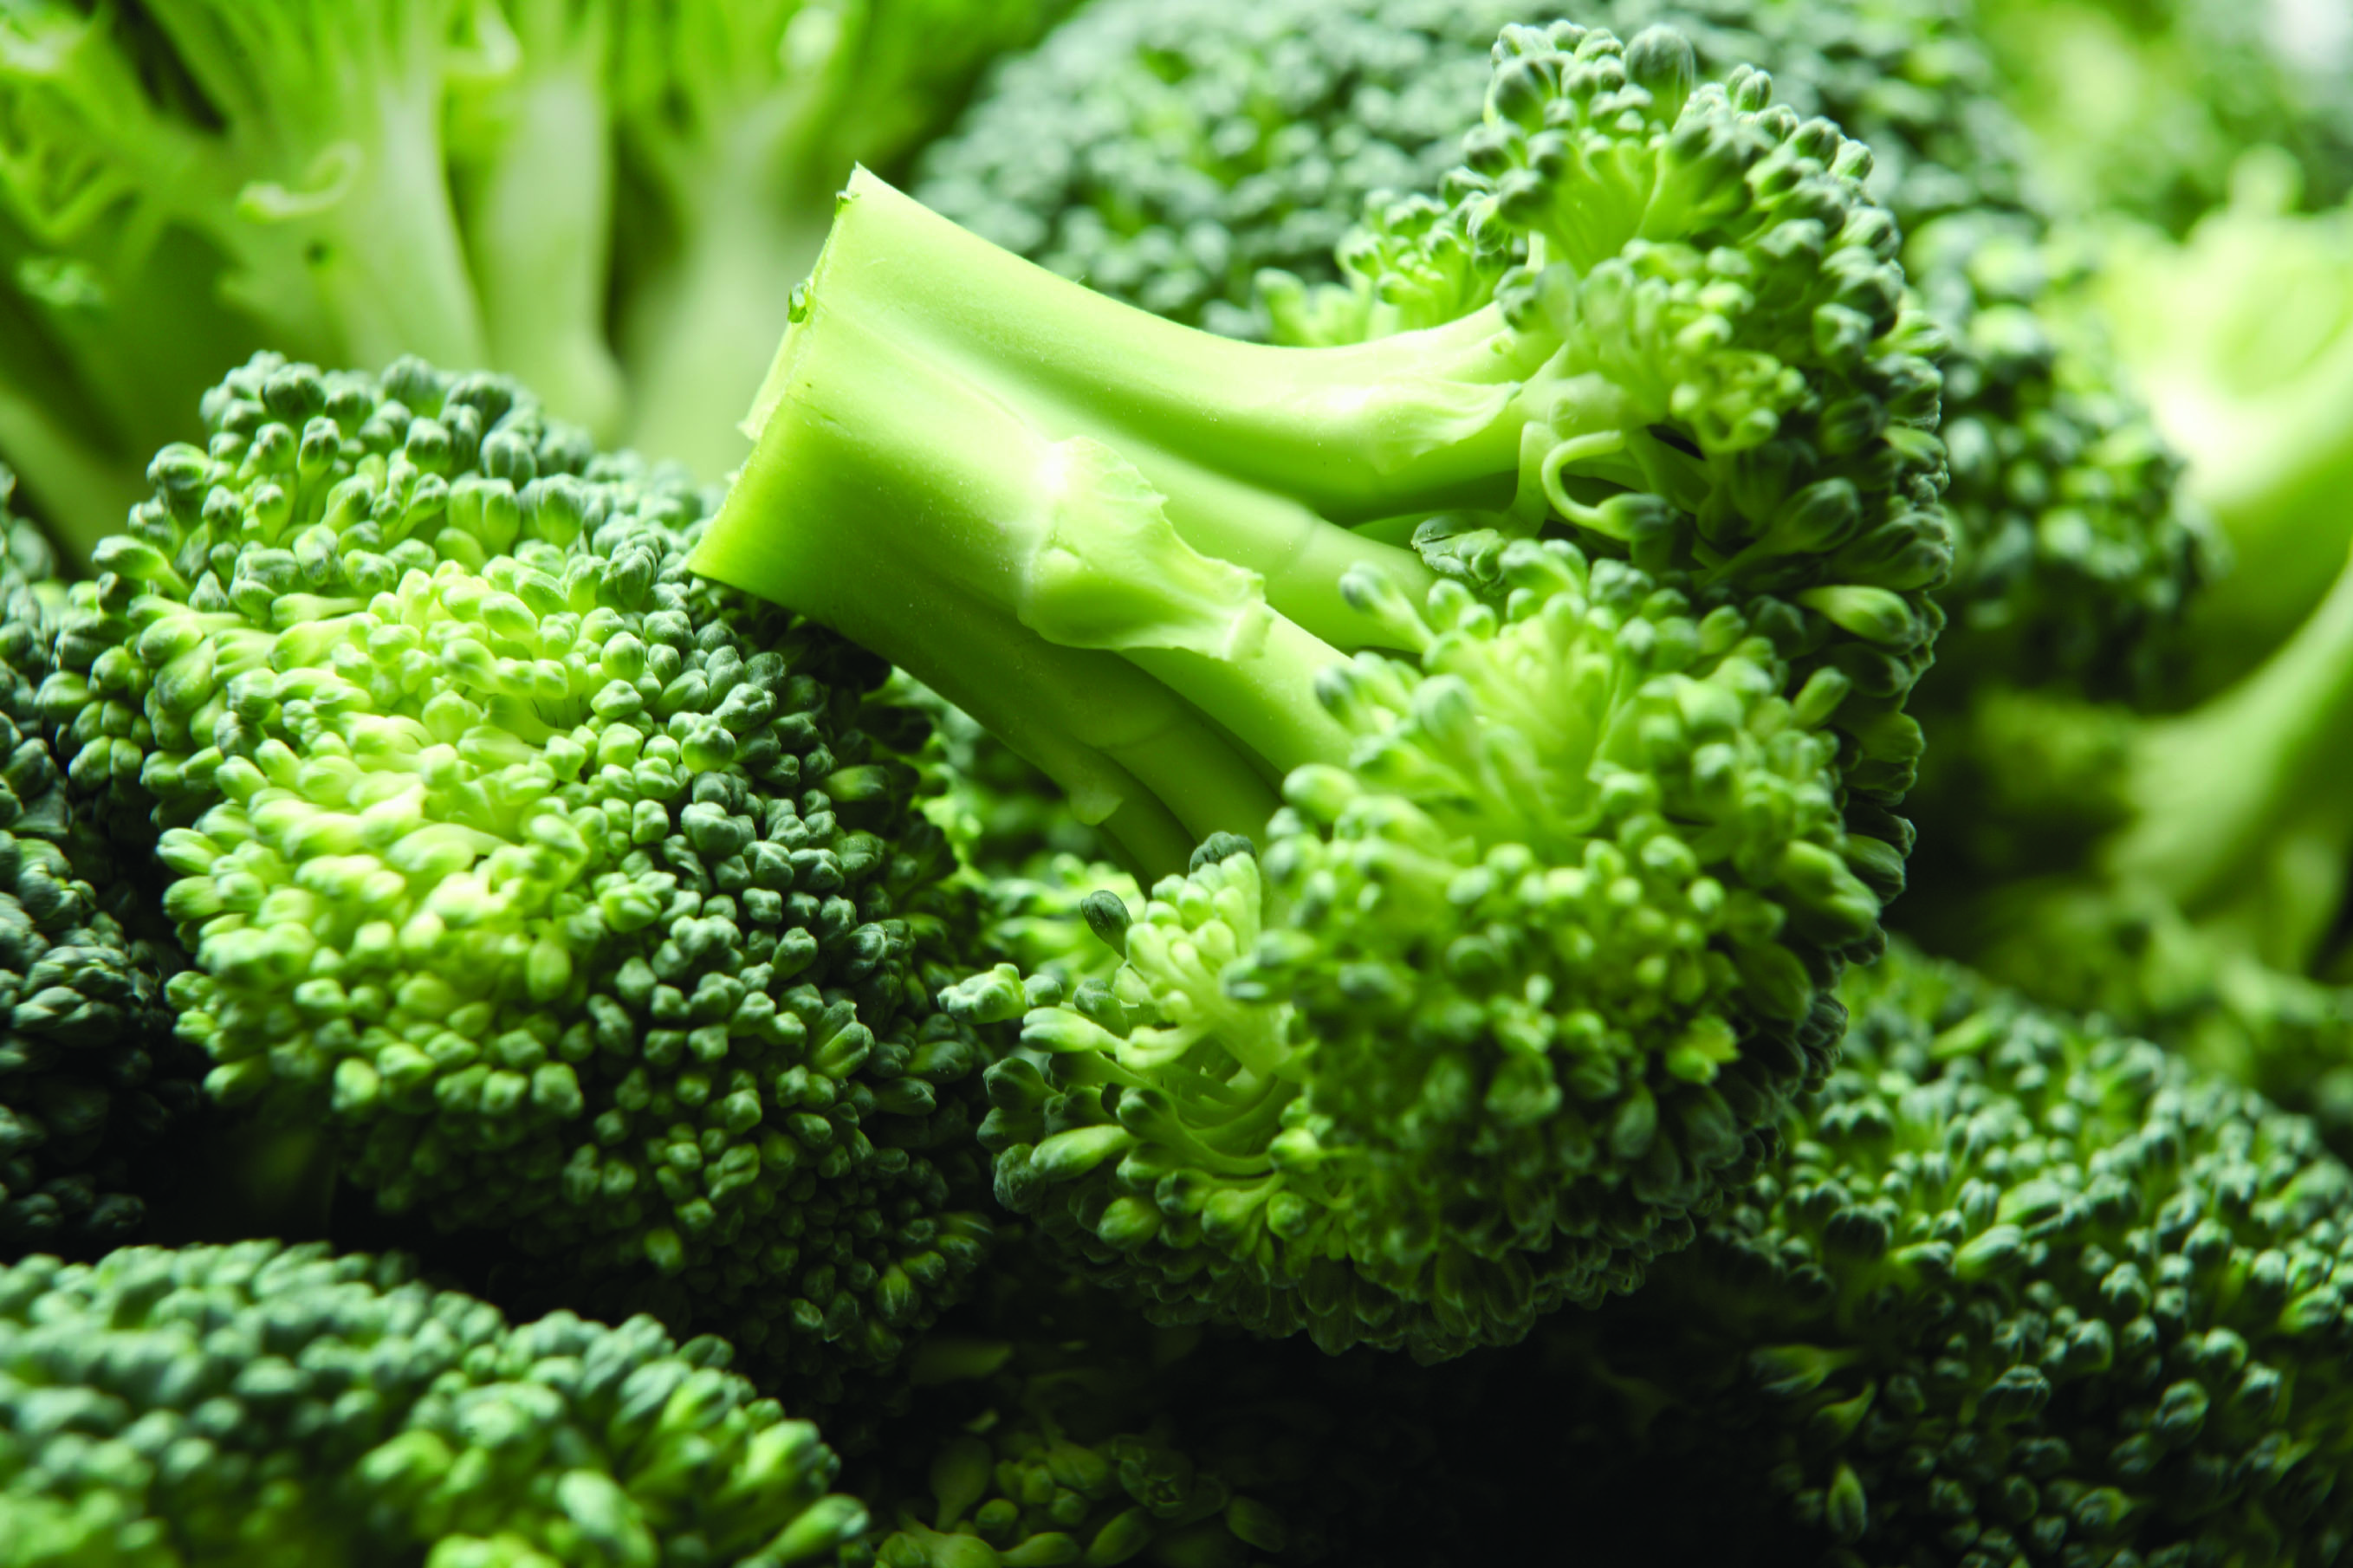 broccoli up close hd wallpaper 62709